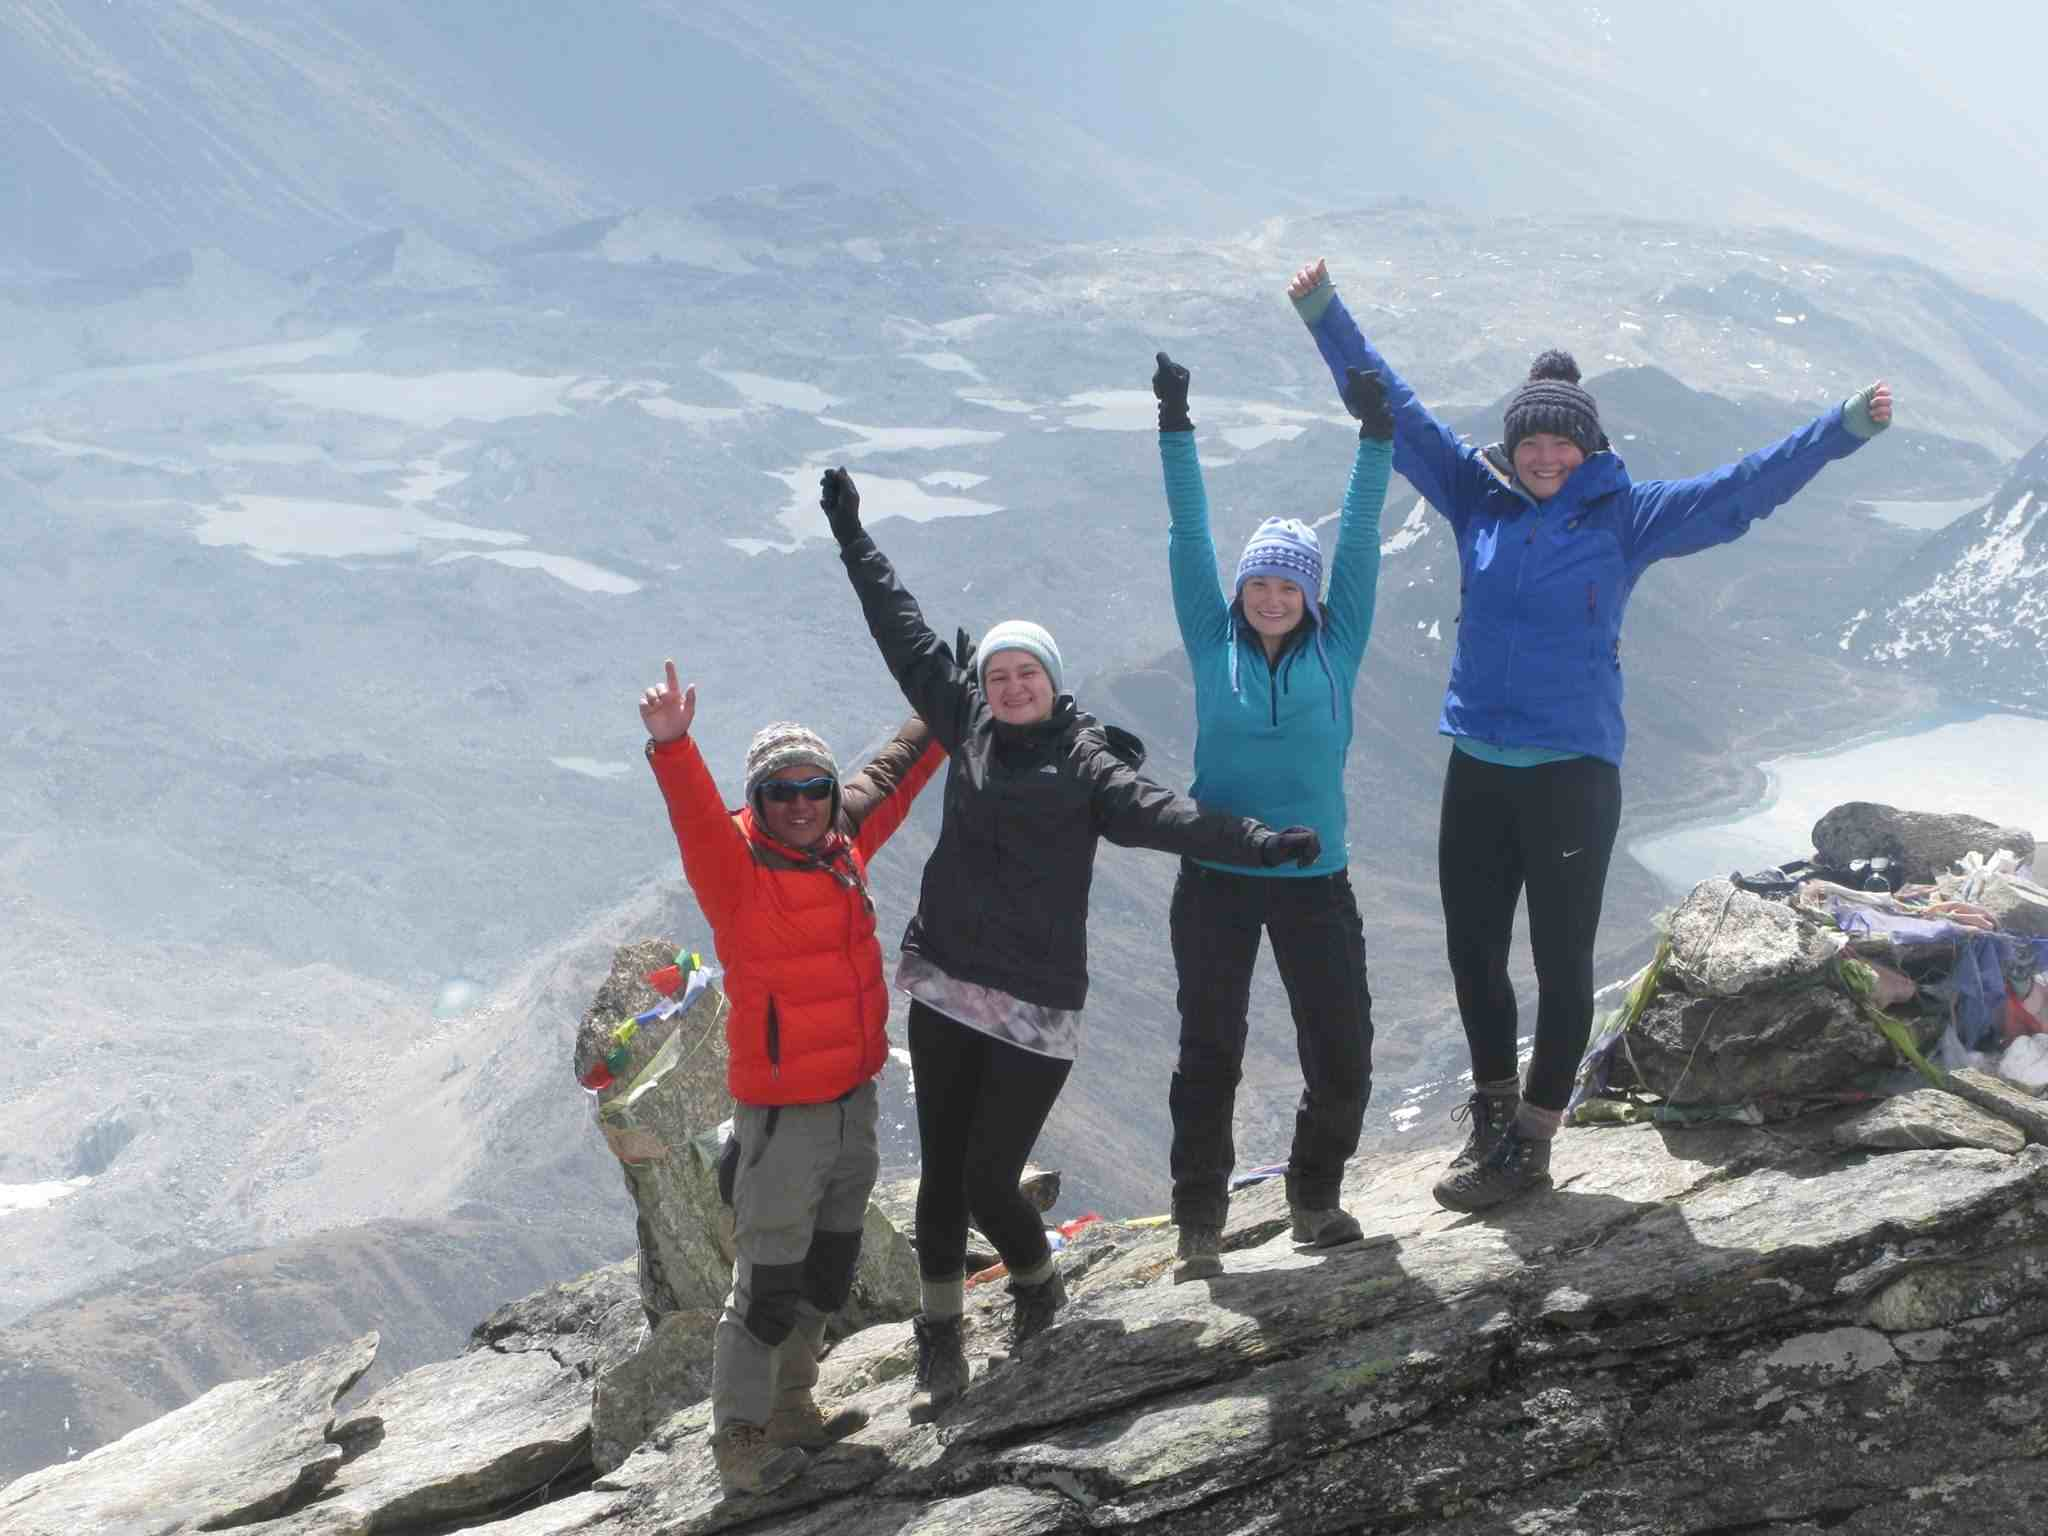 Nepal gap year flights offer